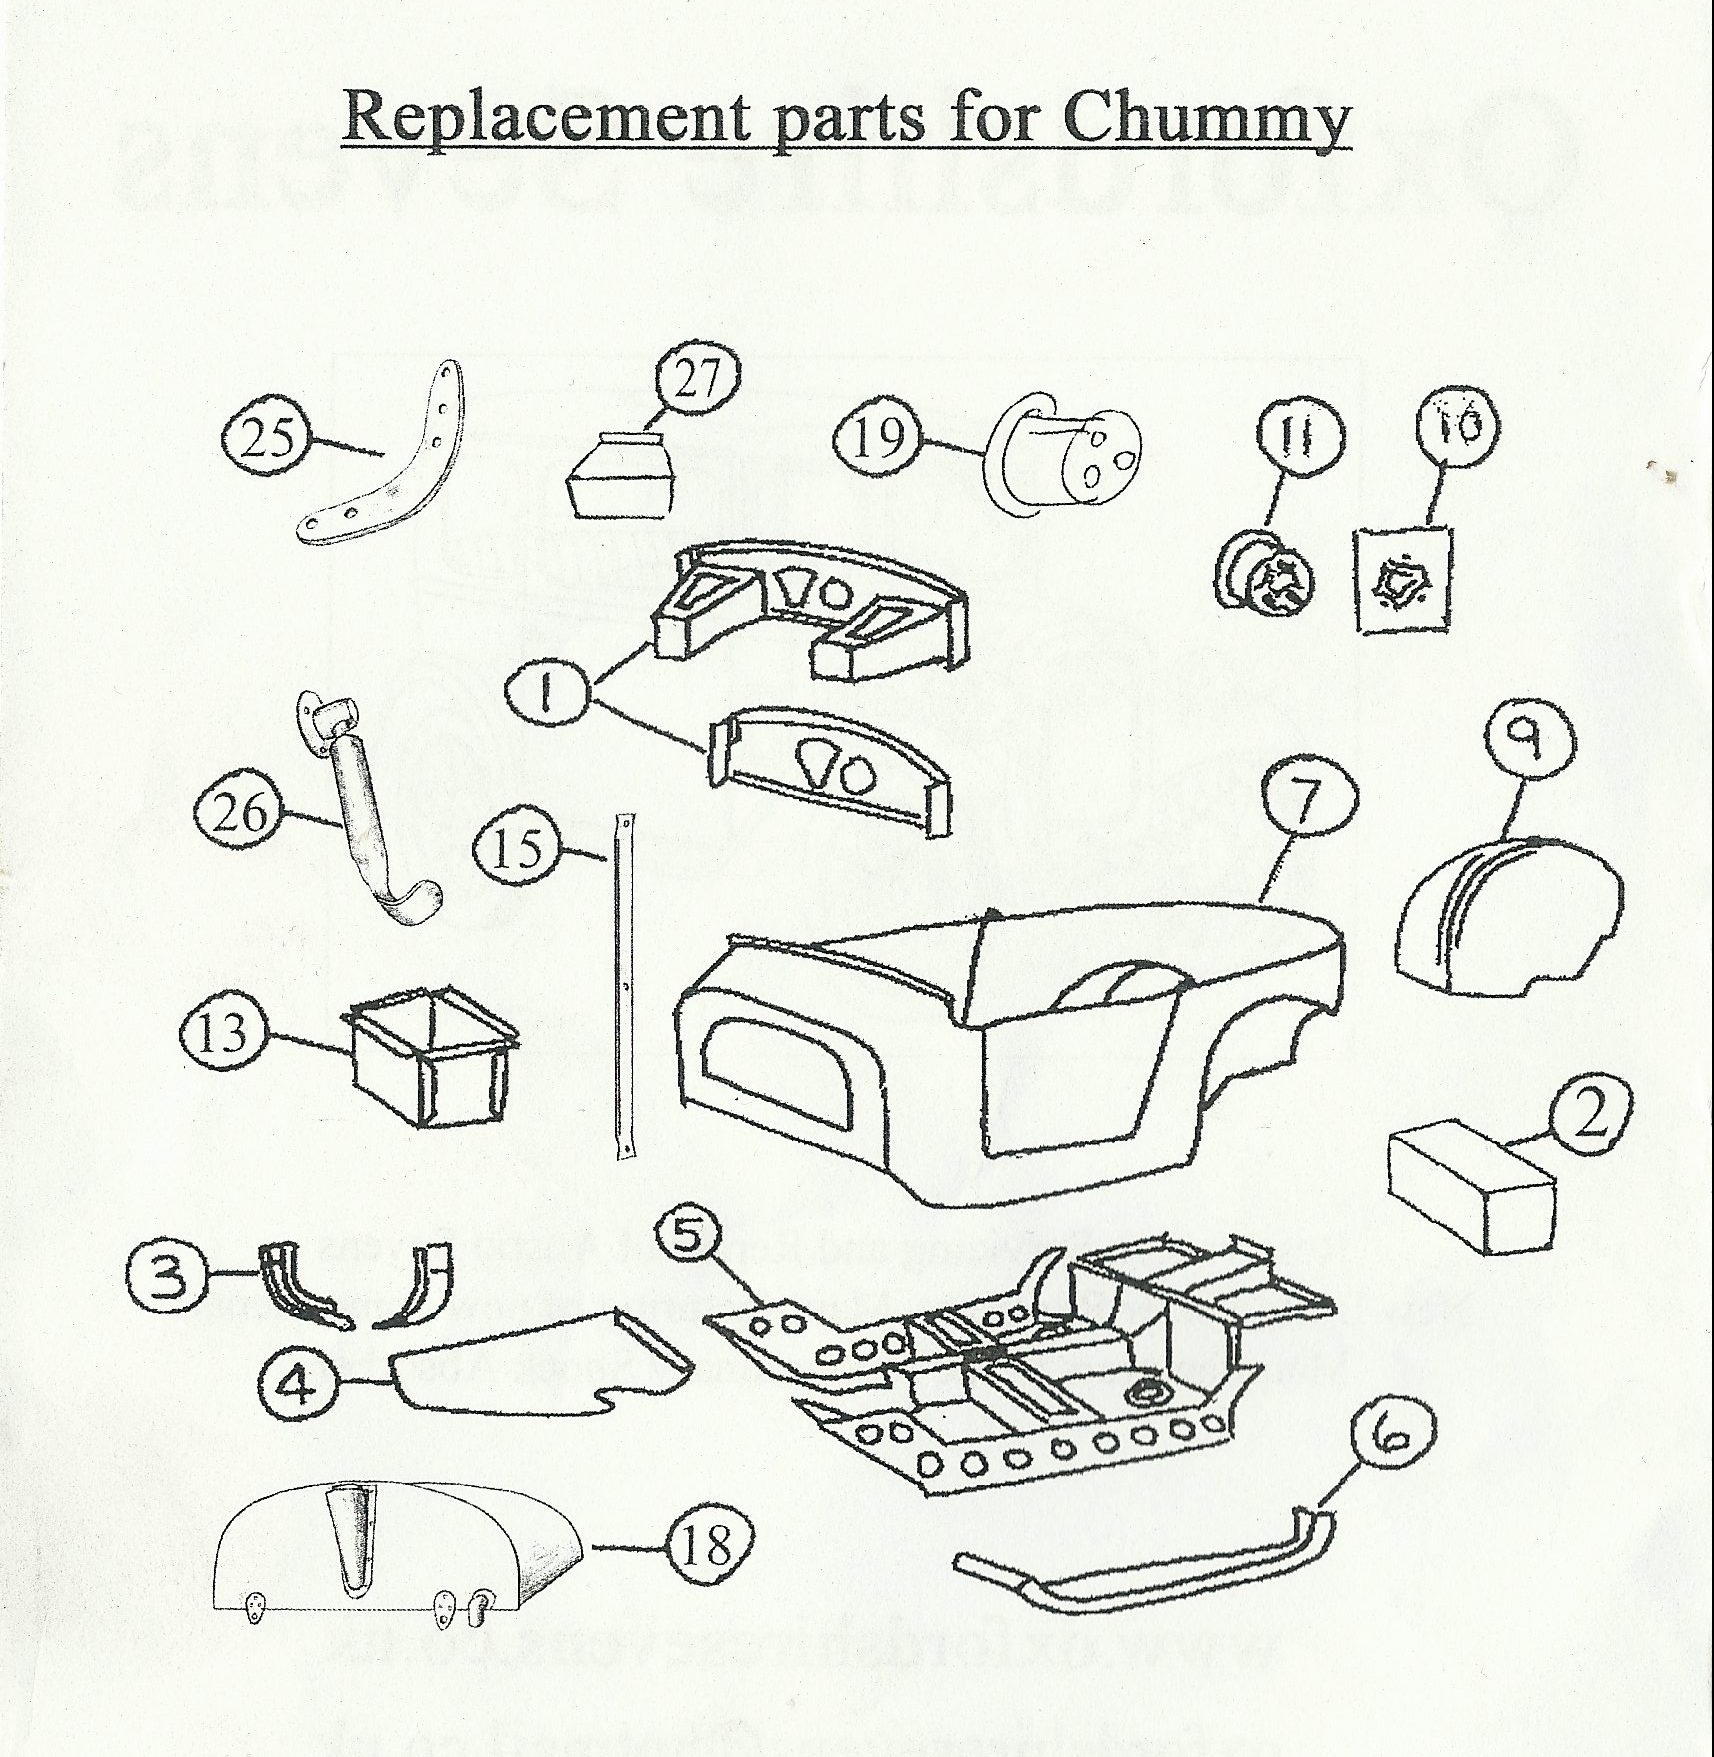 Austin Chummy Body Parts And Panels